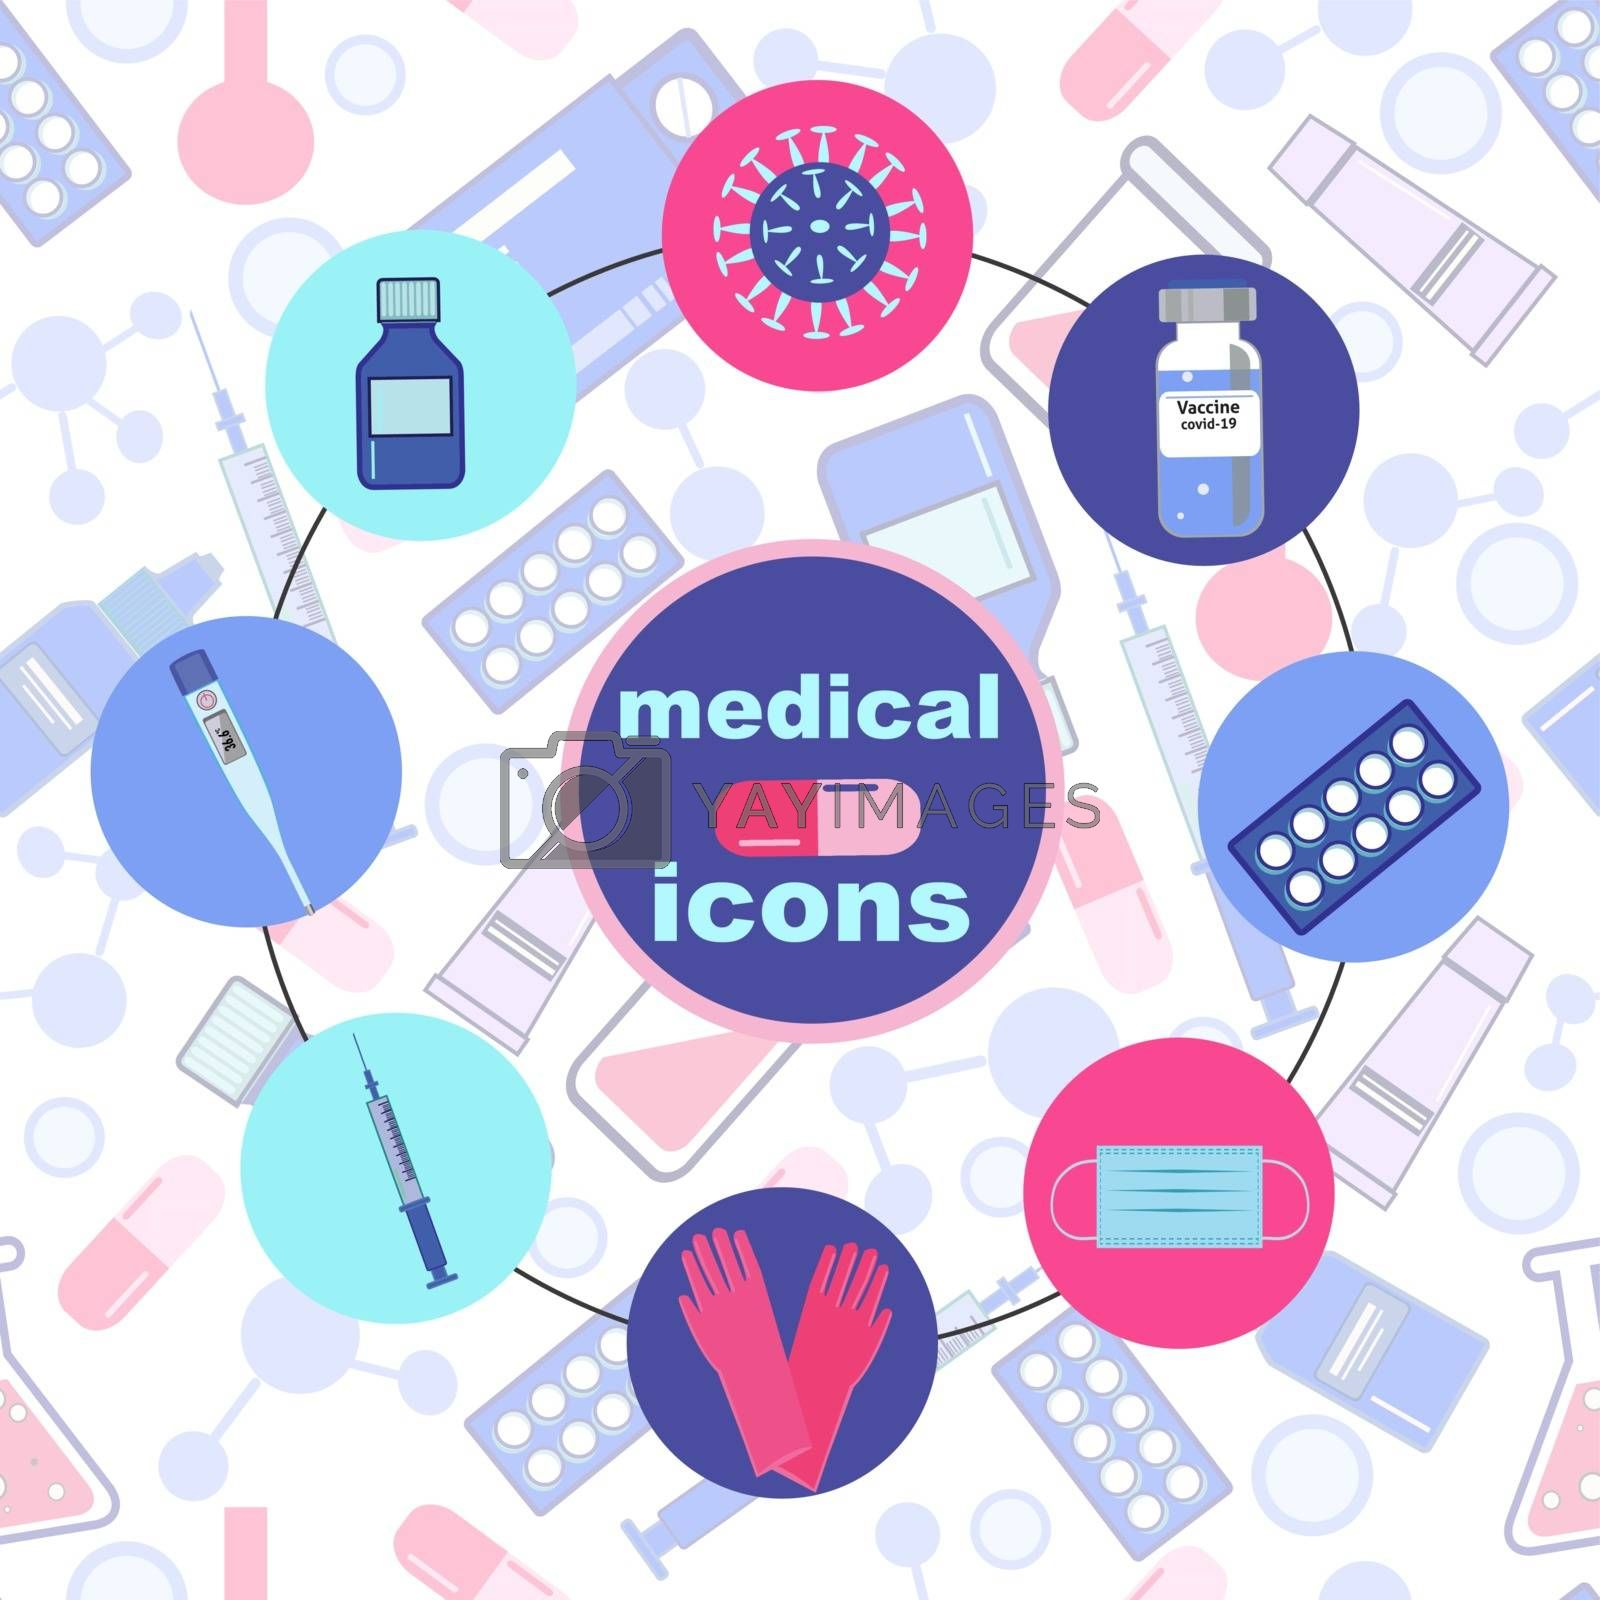 Vector icon set of treatment and healthcare concept. Set of medical icons in circle button style on seamless background.